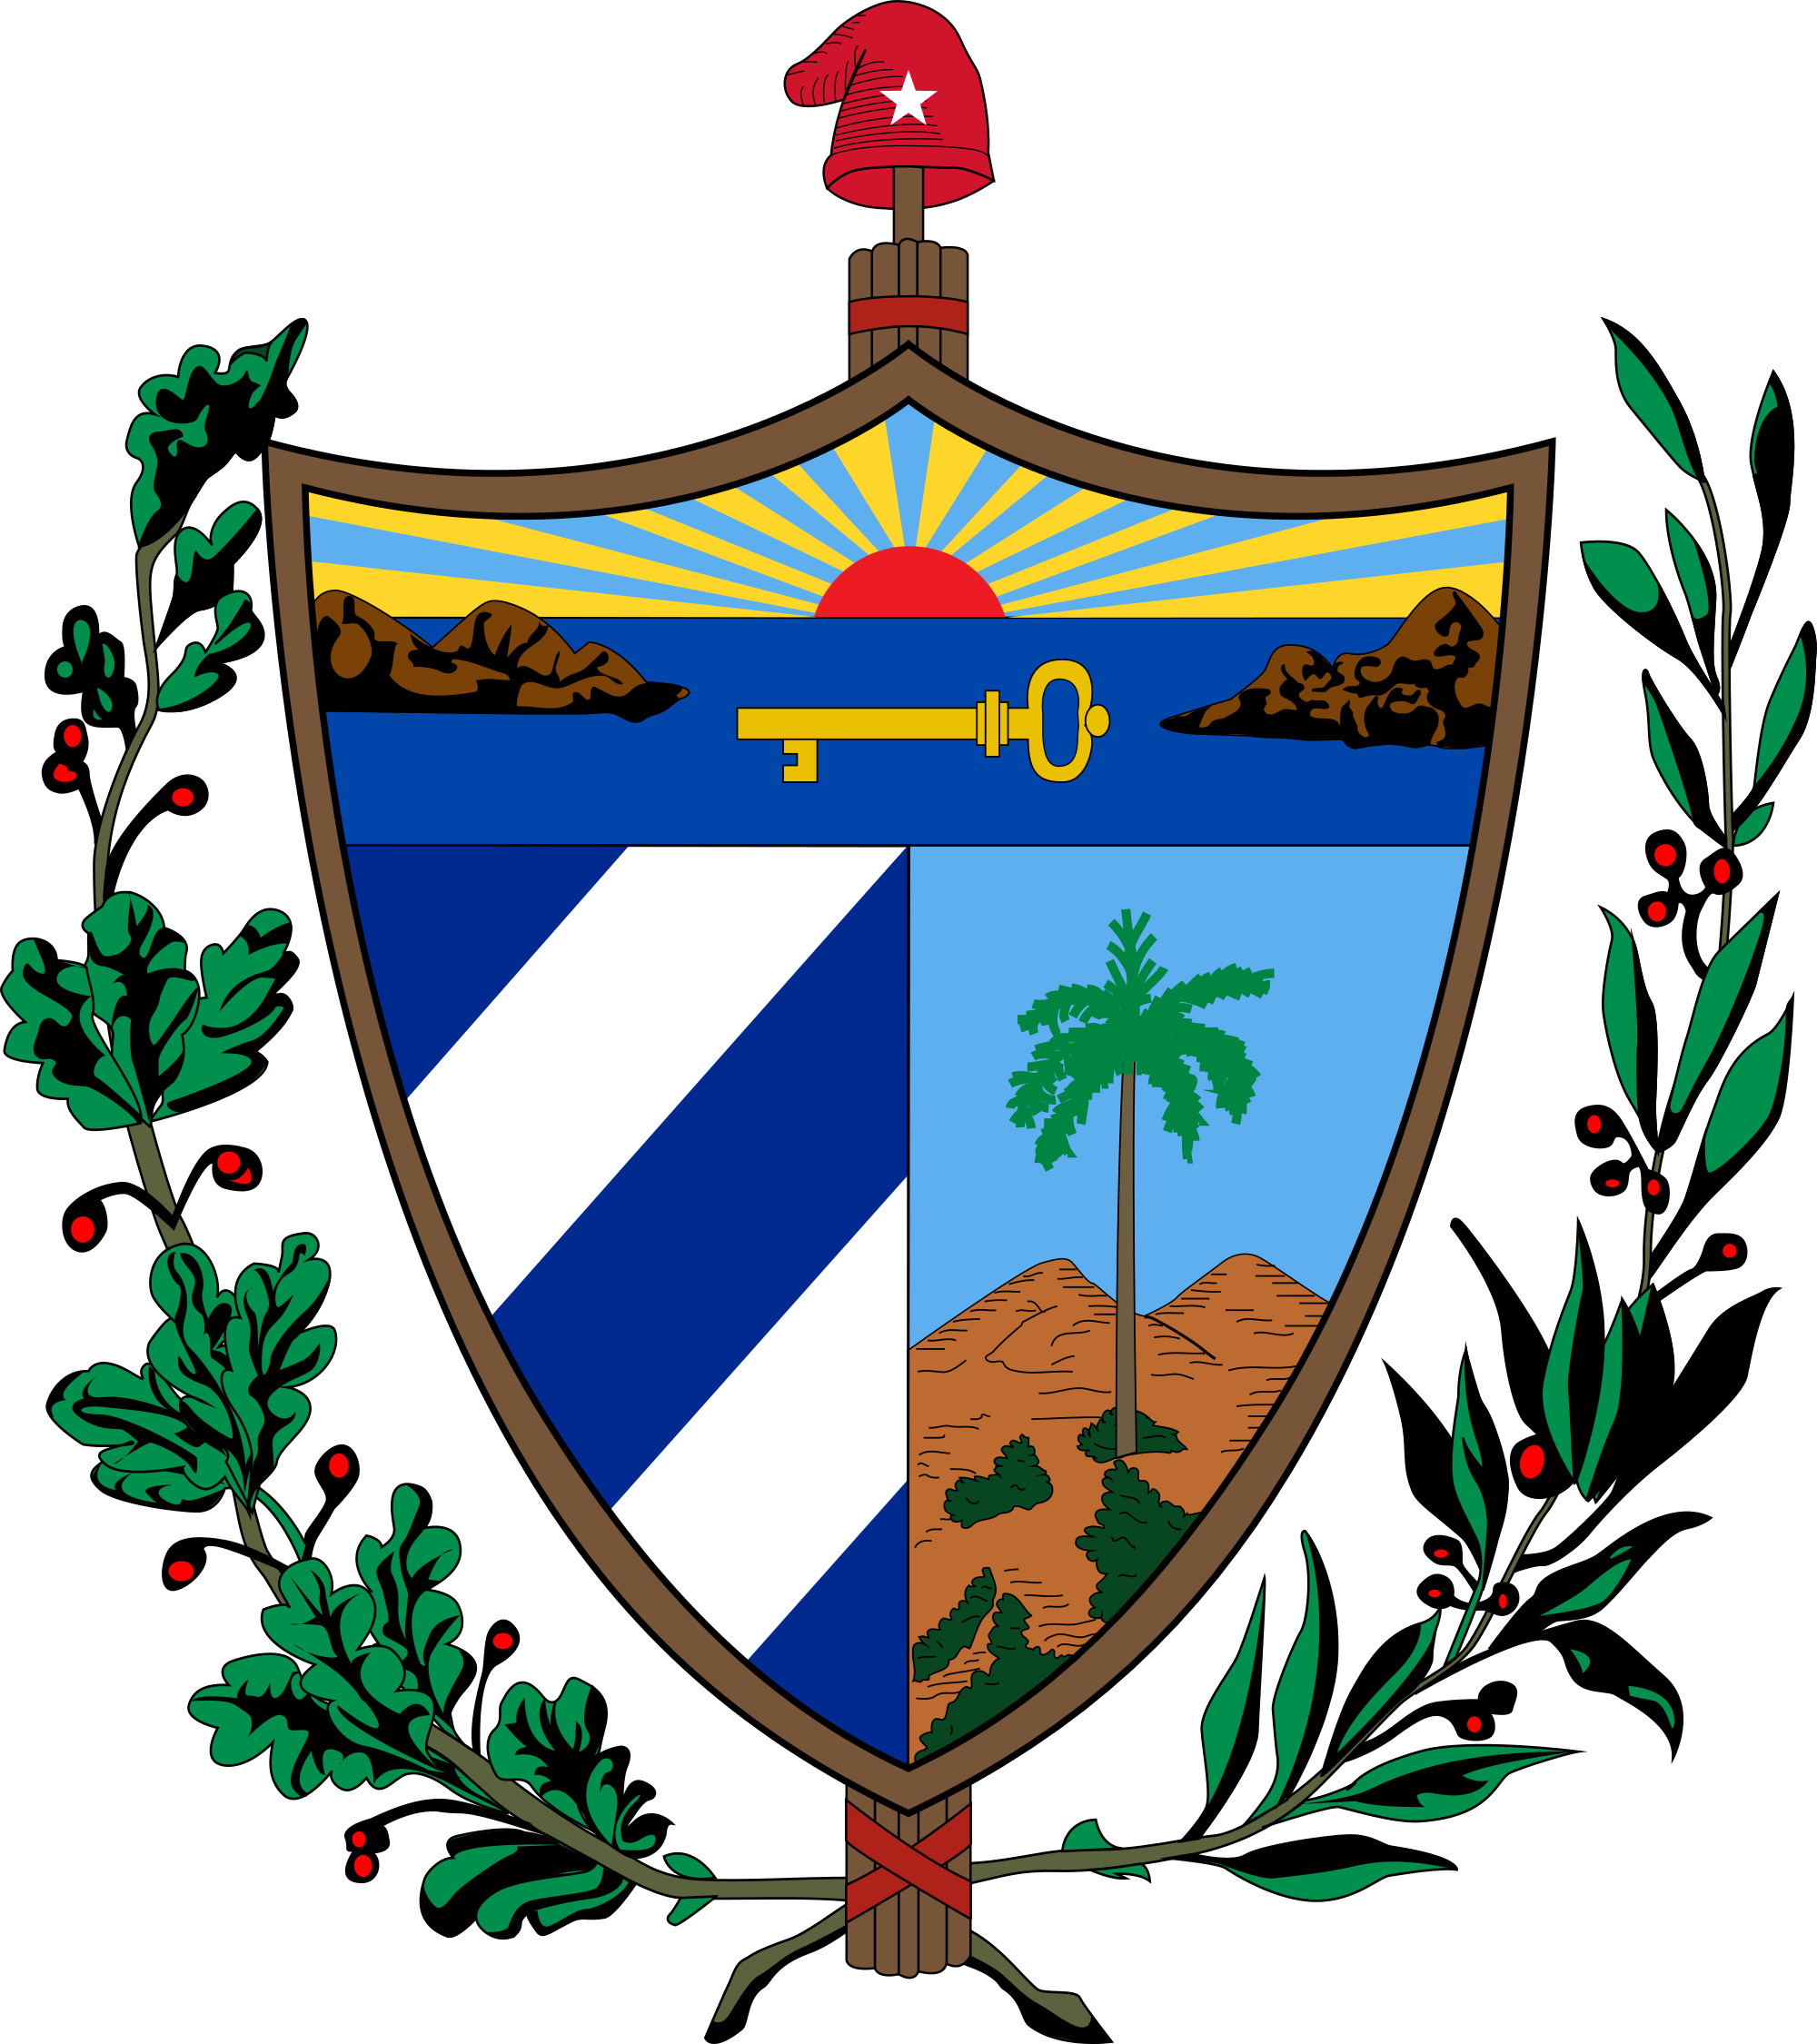 Cuba vector element. The great seal of